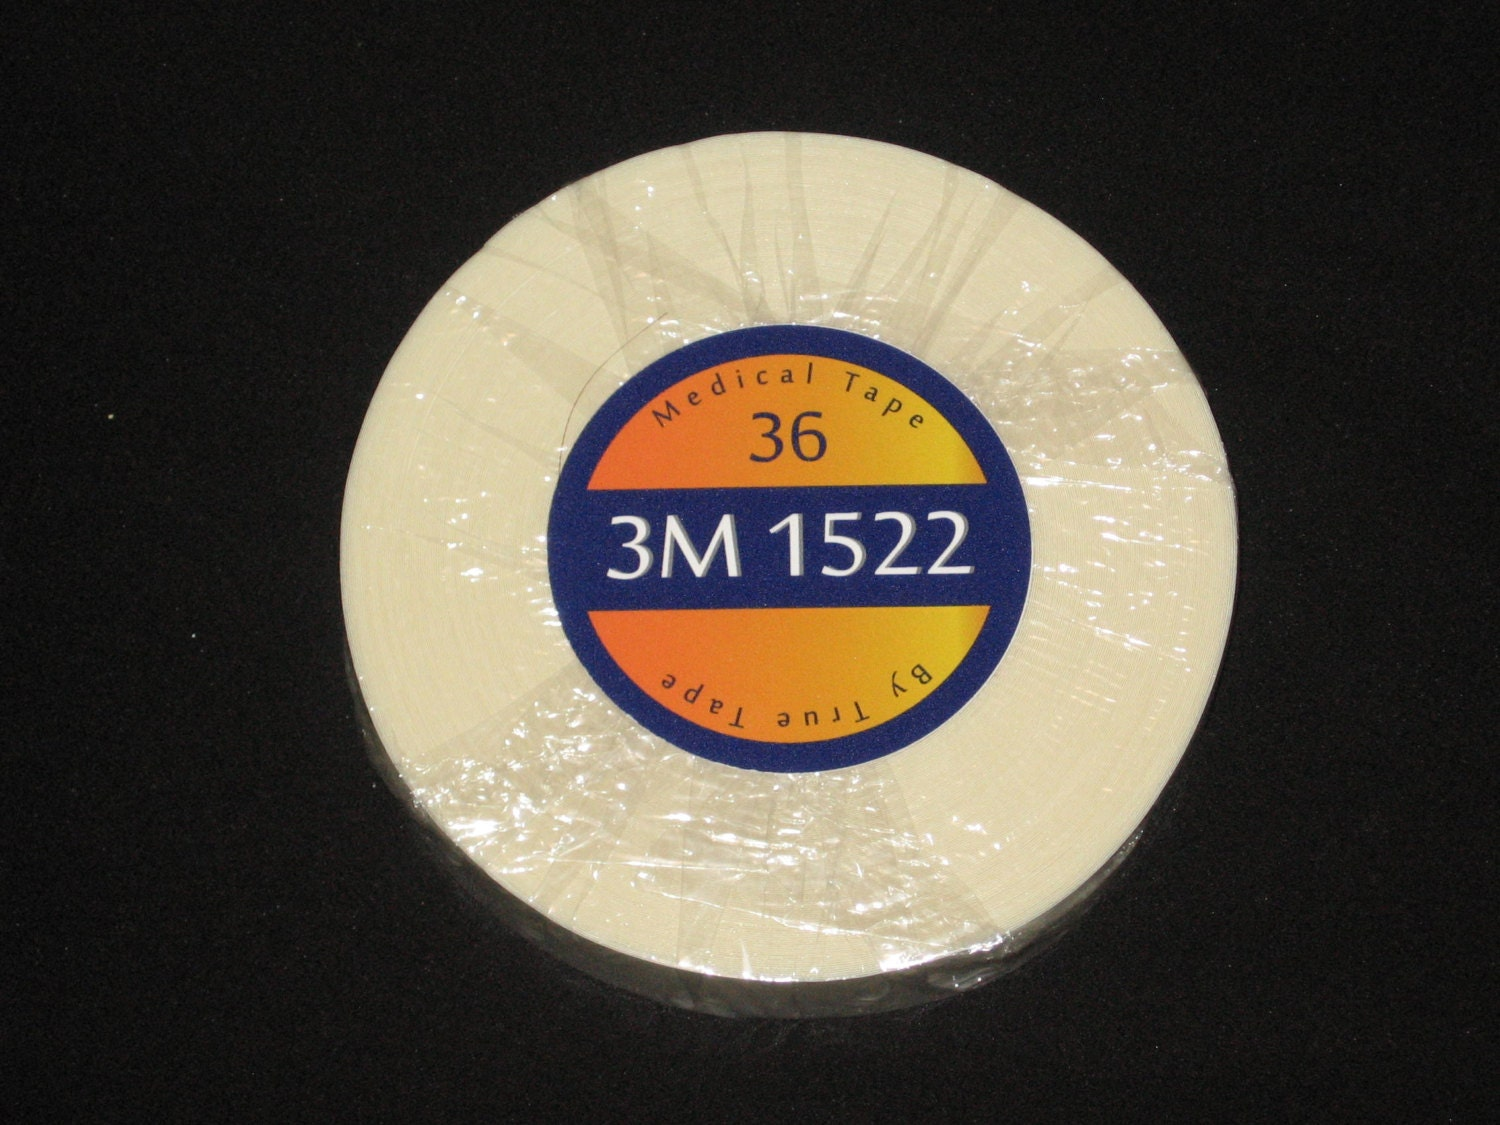 Supertape True Tape 3m Clear 3 4x 36 Yards 1522 Daily